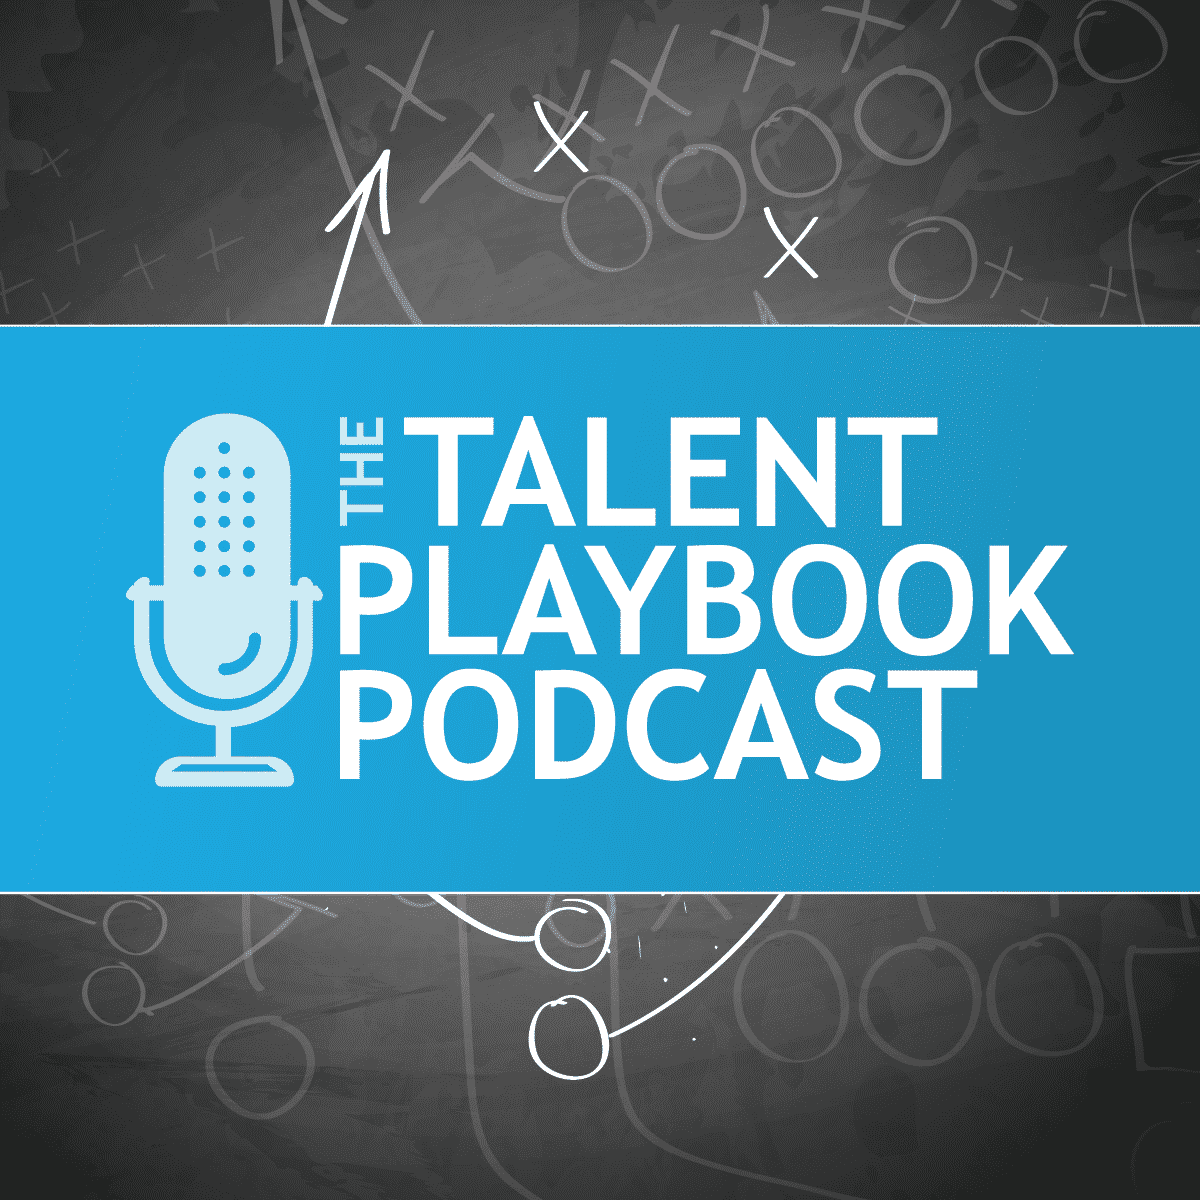 #1 Talent Playbook Podcast Live Series Premiere W/ Logan's Roadhouse CPO